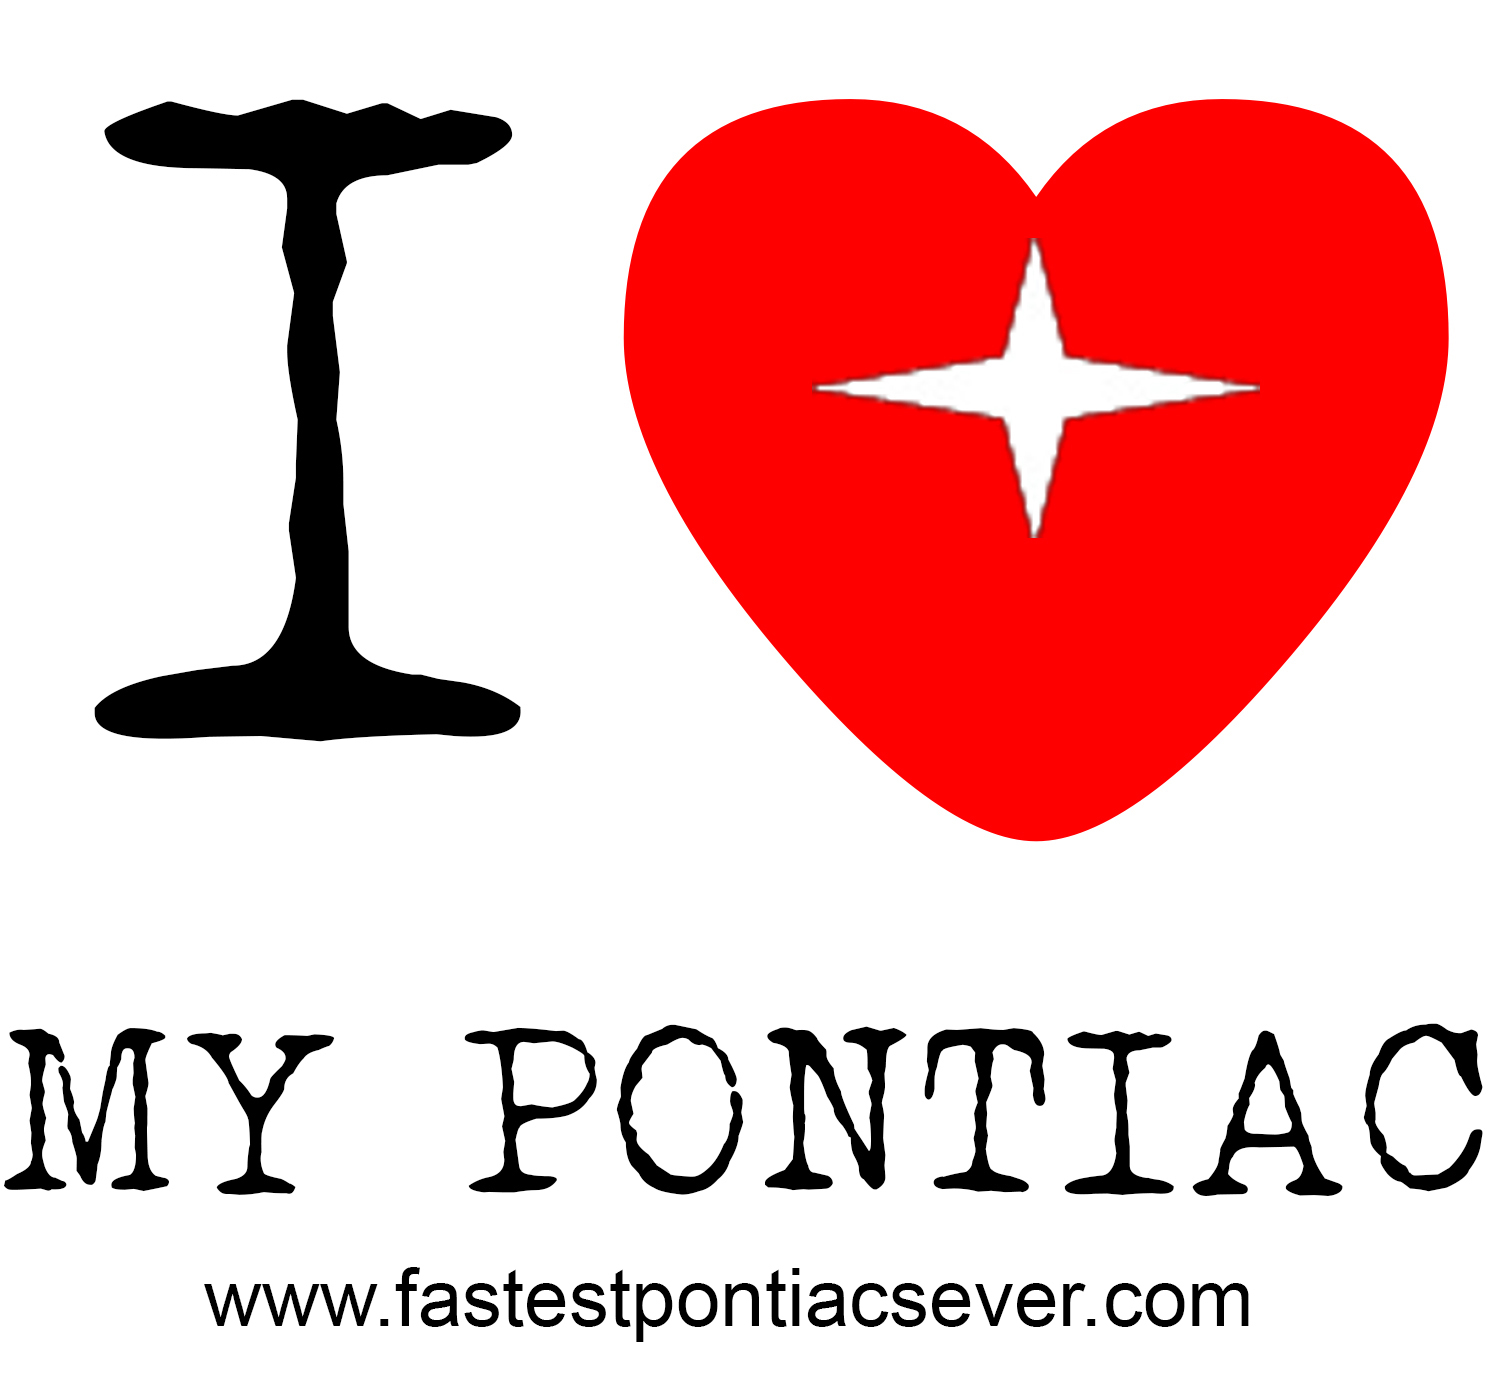 I love MY Pontiac mug design